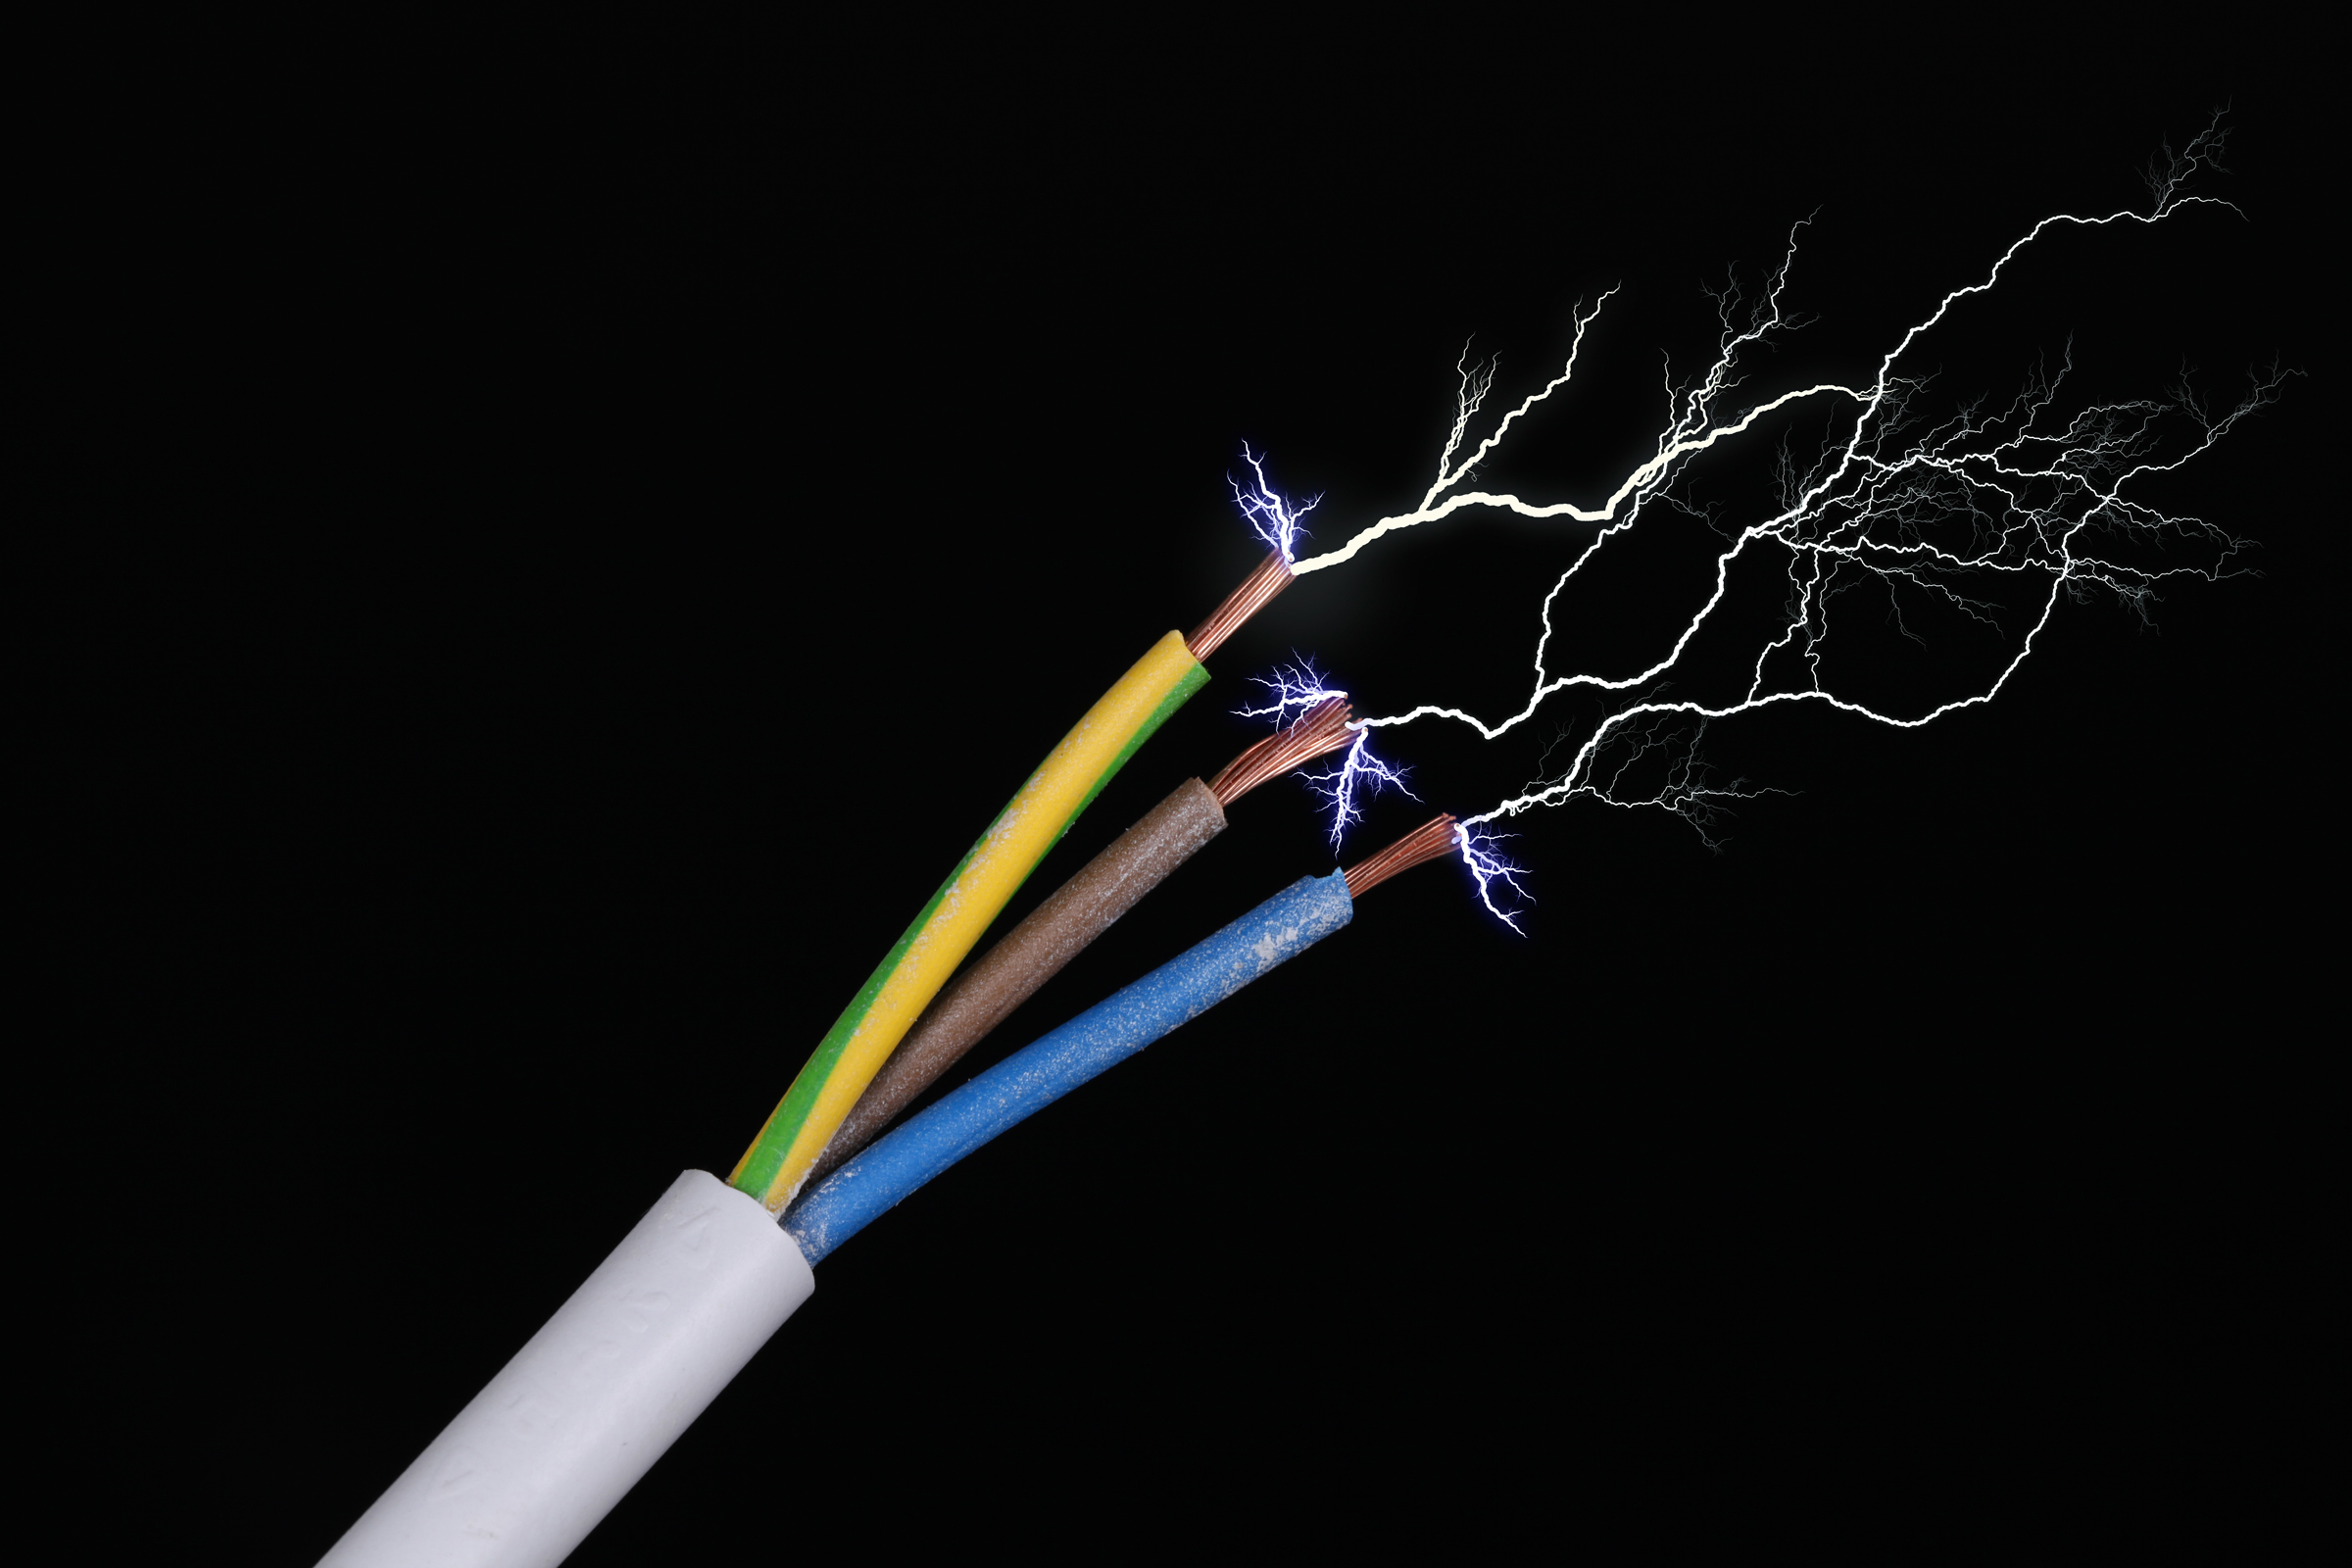 cable_with_electricity-1